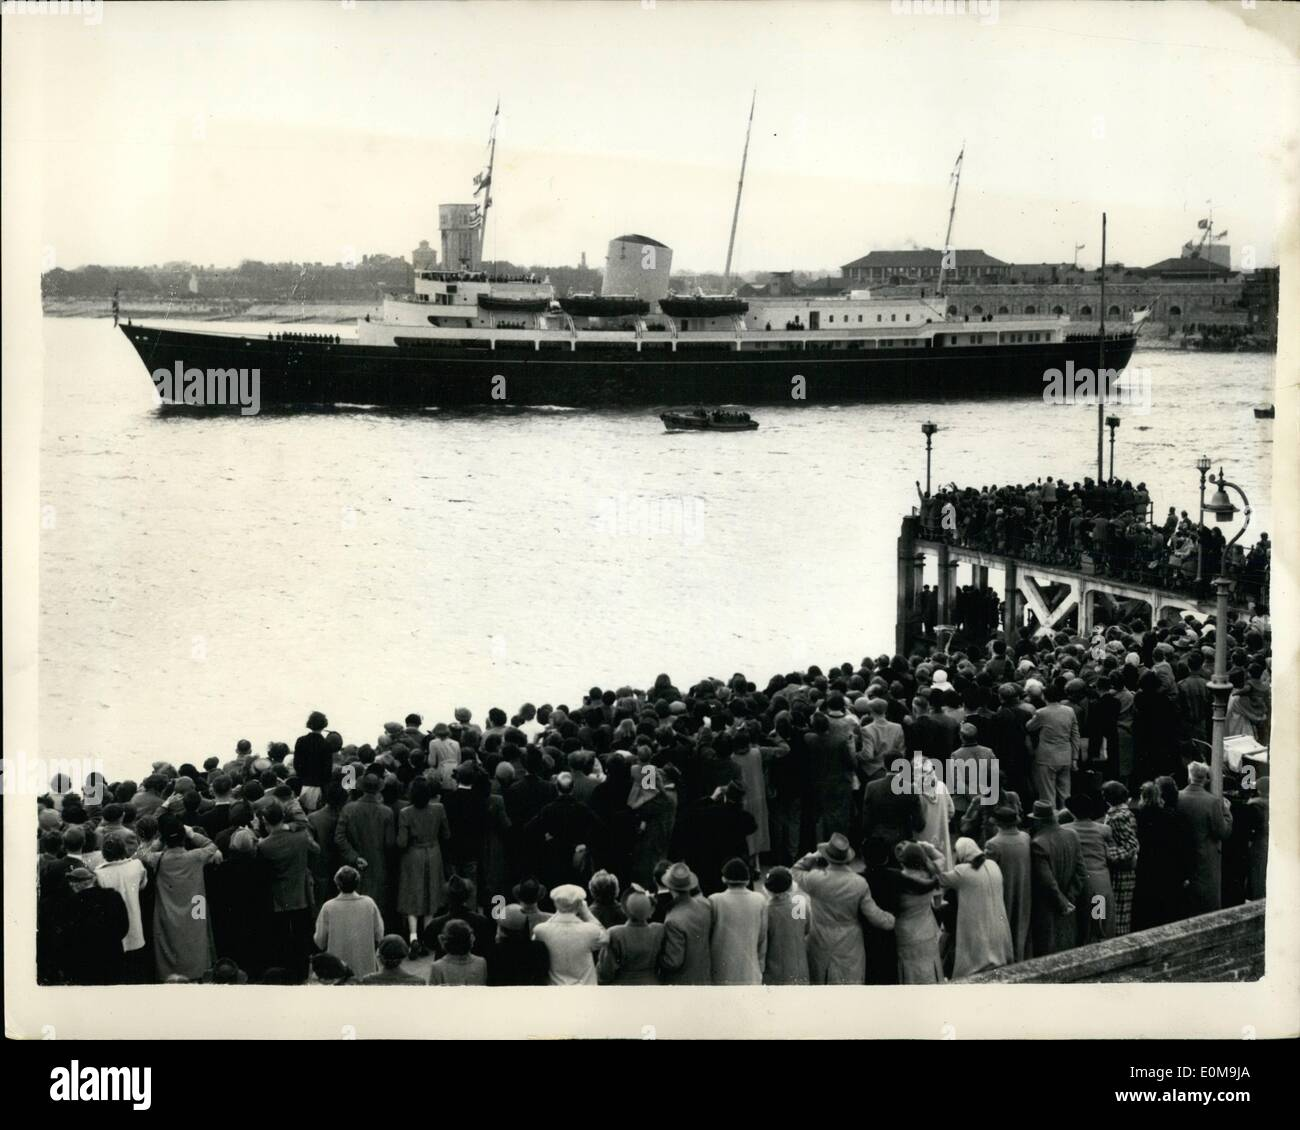 Apr. 04, 1954 - The Royal children leave Portsmouth for Tobruk, crowds wave farewell. Prince Charles and Princess Anne left Portsmouth aboard the new Royal Yacht Britannia for Tobruk this afternoon to meet their parents, The Queen and Duke of Edinburgh. They were seen off by the Queen Mother and Princess Margaret. Keystone Photo shows: The scene as the huge crowd waves farewell from the shore at Portsmouth this afternoon as the Britannia left on her voyage to Tobruk with the Royal children aboard. - Stock Image